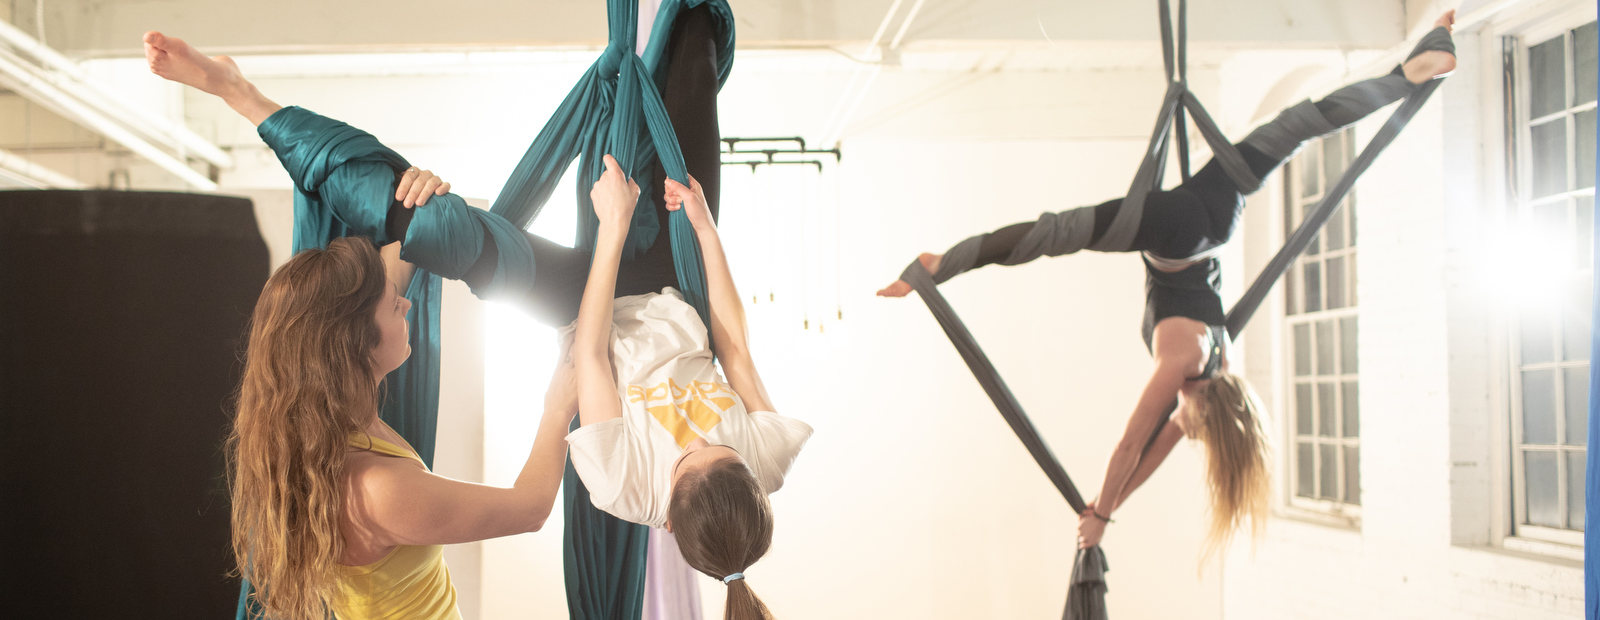 Students learn to exercise and perform in the air using silks at Zeal Aerial Fitness.